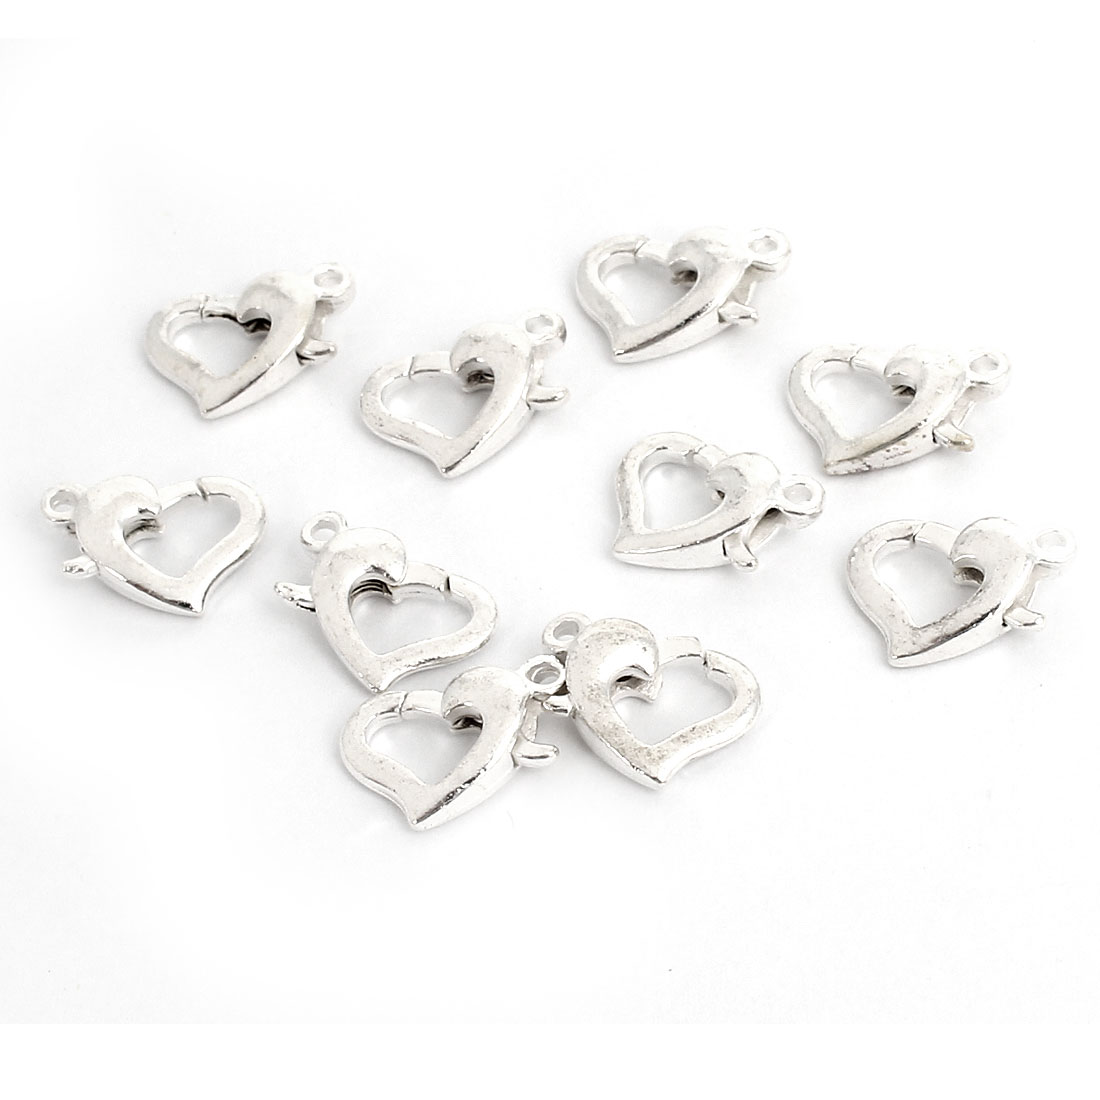 10 Pcs Silver Tone Heart Design Lobster Clasps Jewelry Connector Kits